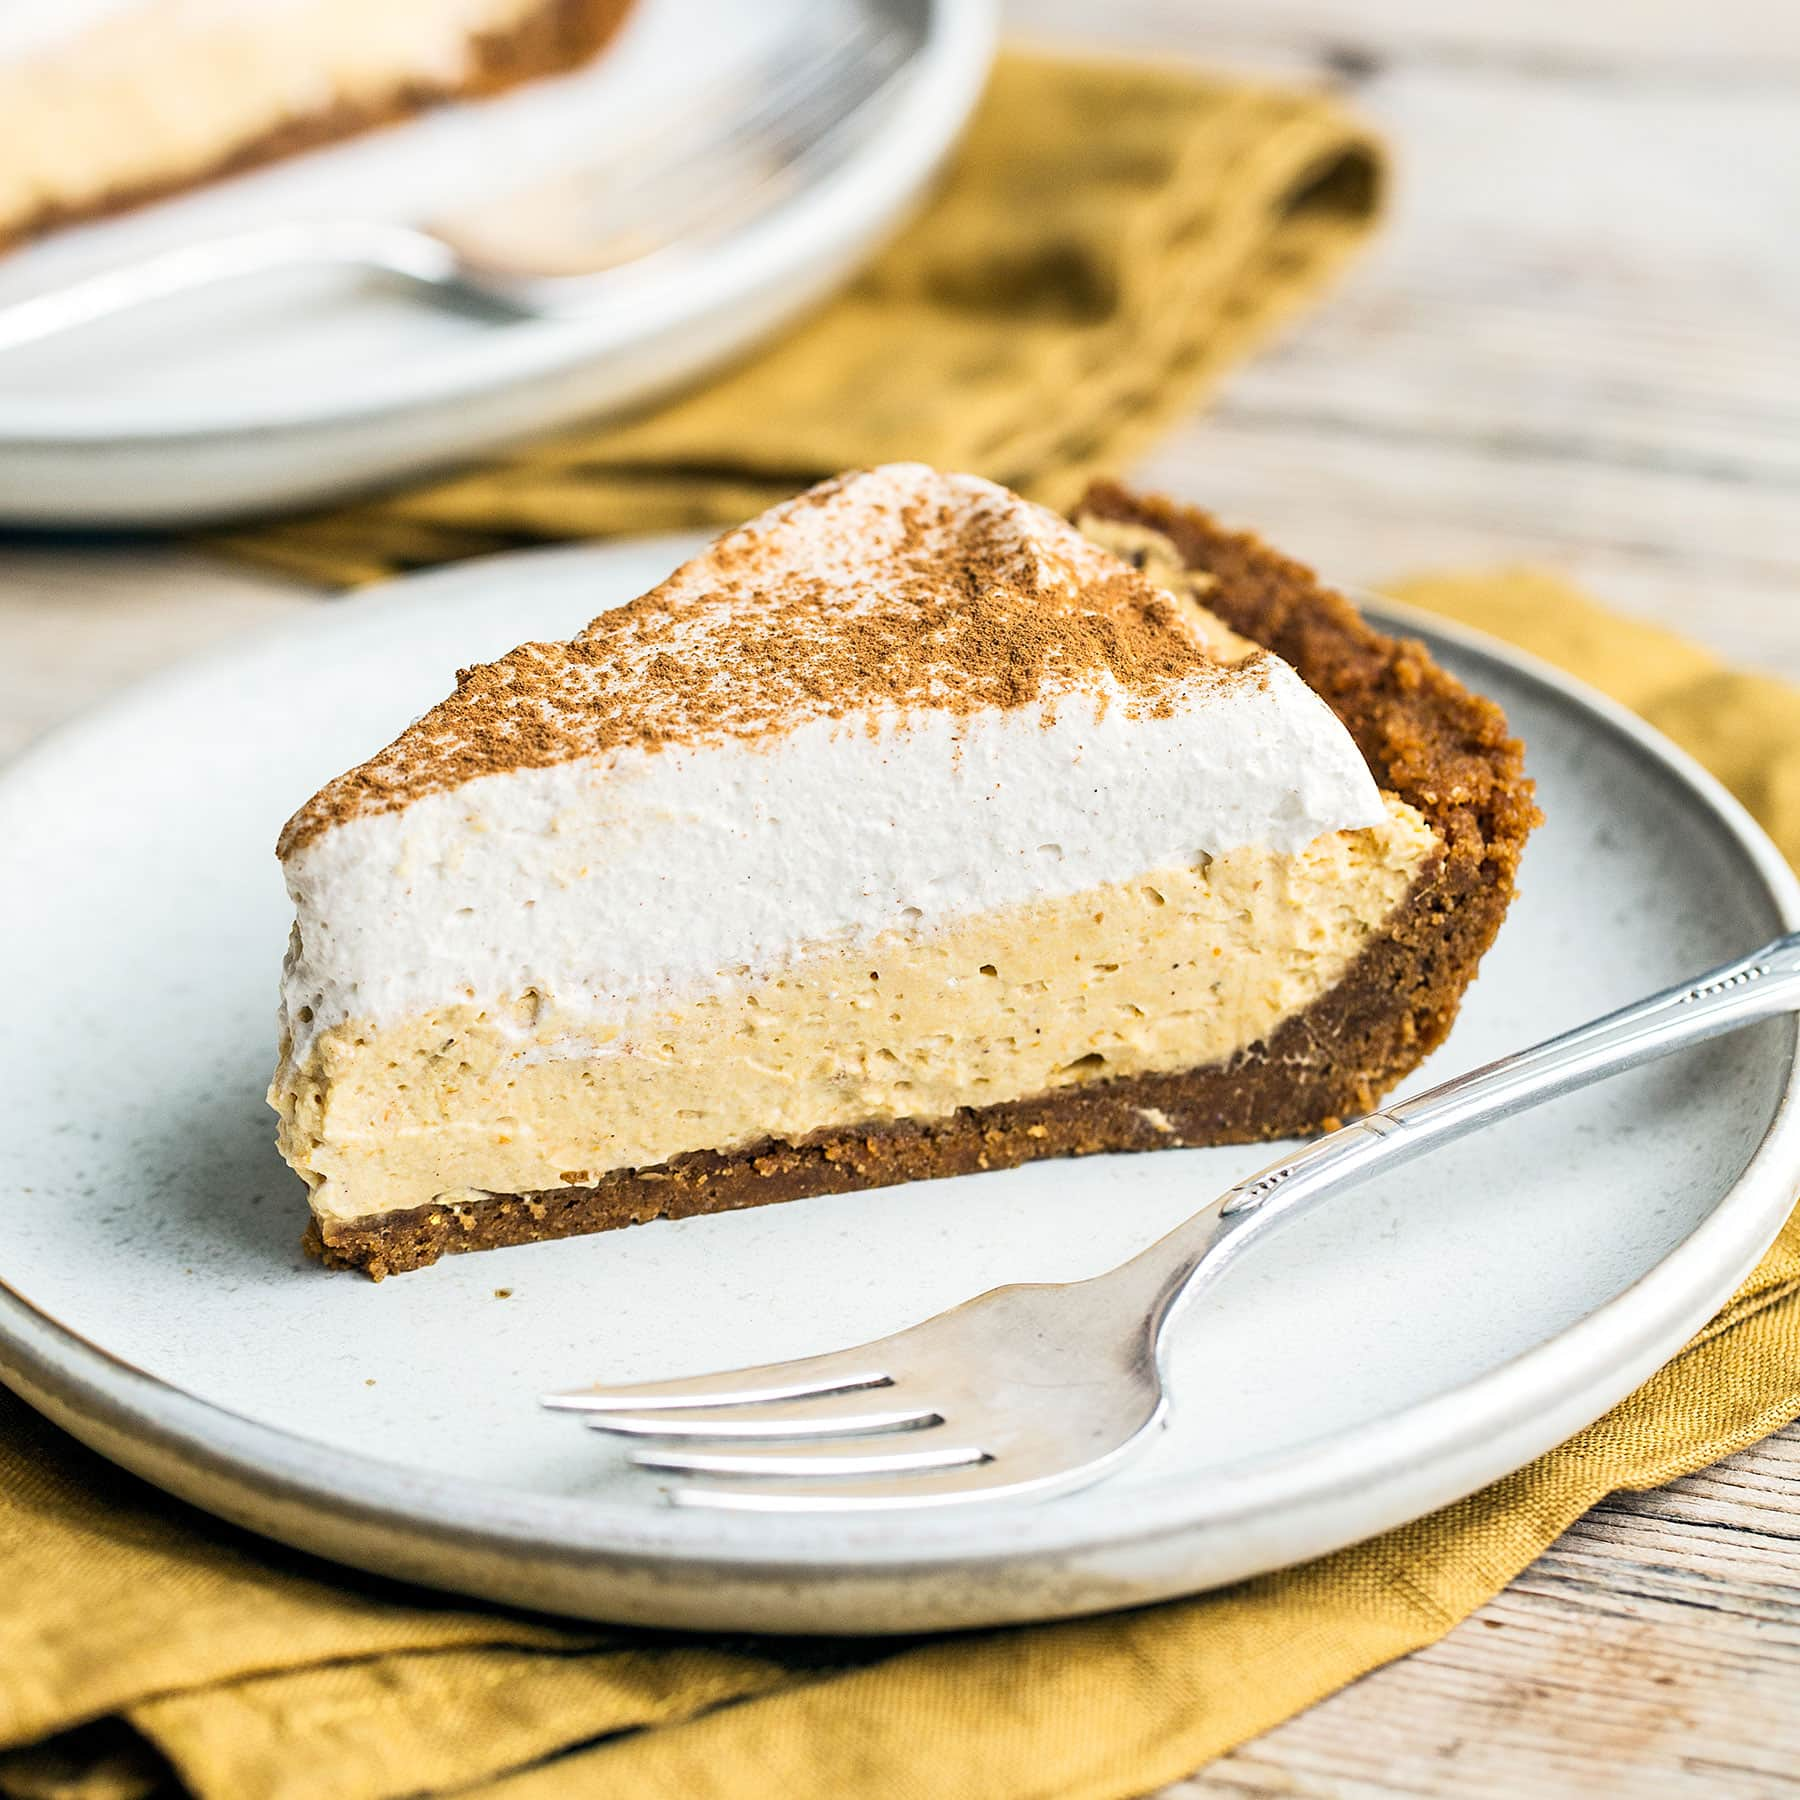 No Bake Pumpkin Mousse Pie features a thick Biscoff cookie crust filled with homemade pumpkin spice mousse and topped with fresh whipped cream. It's the ultimate easy pumpkin pie for Thanksgiving!